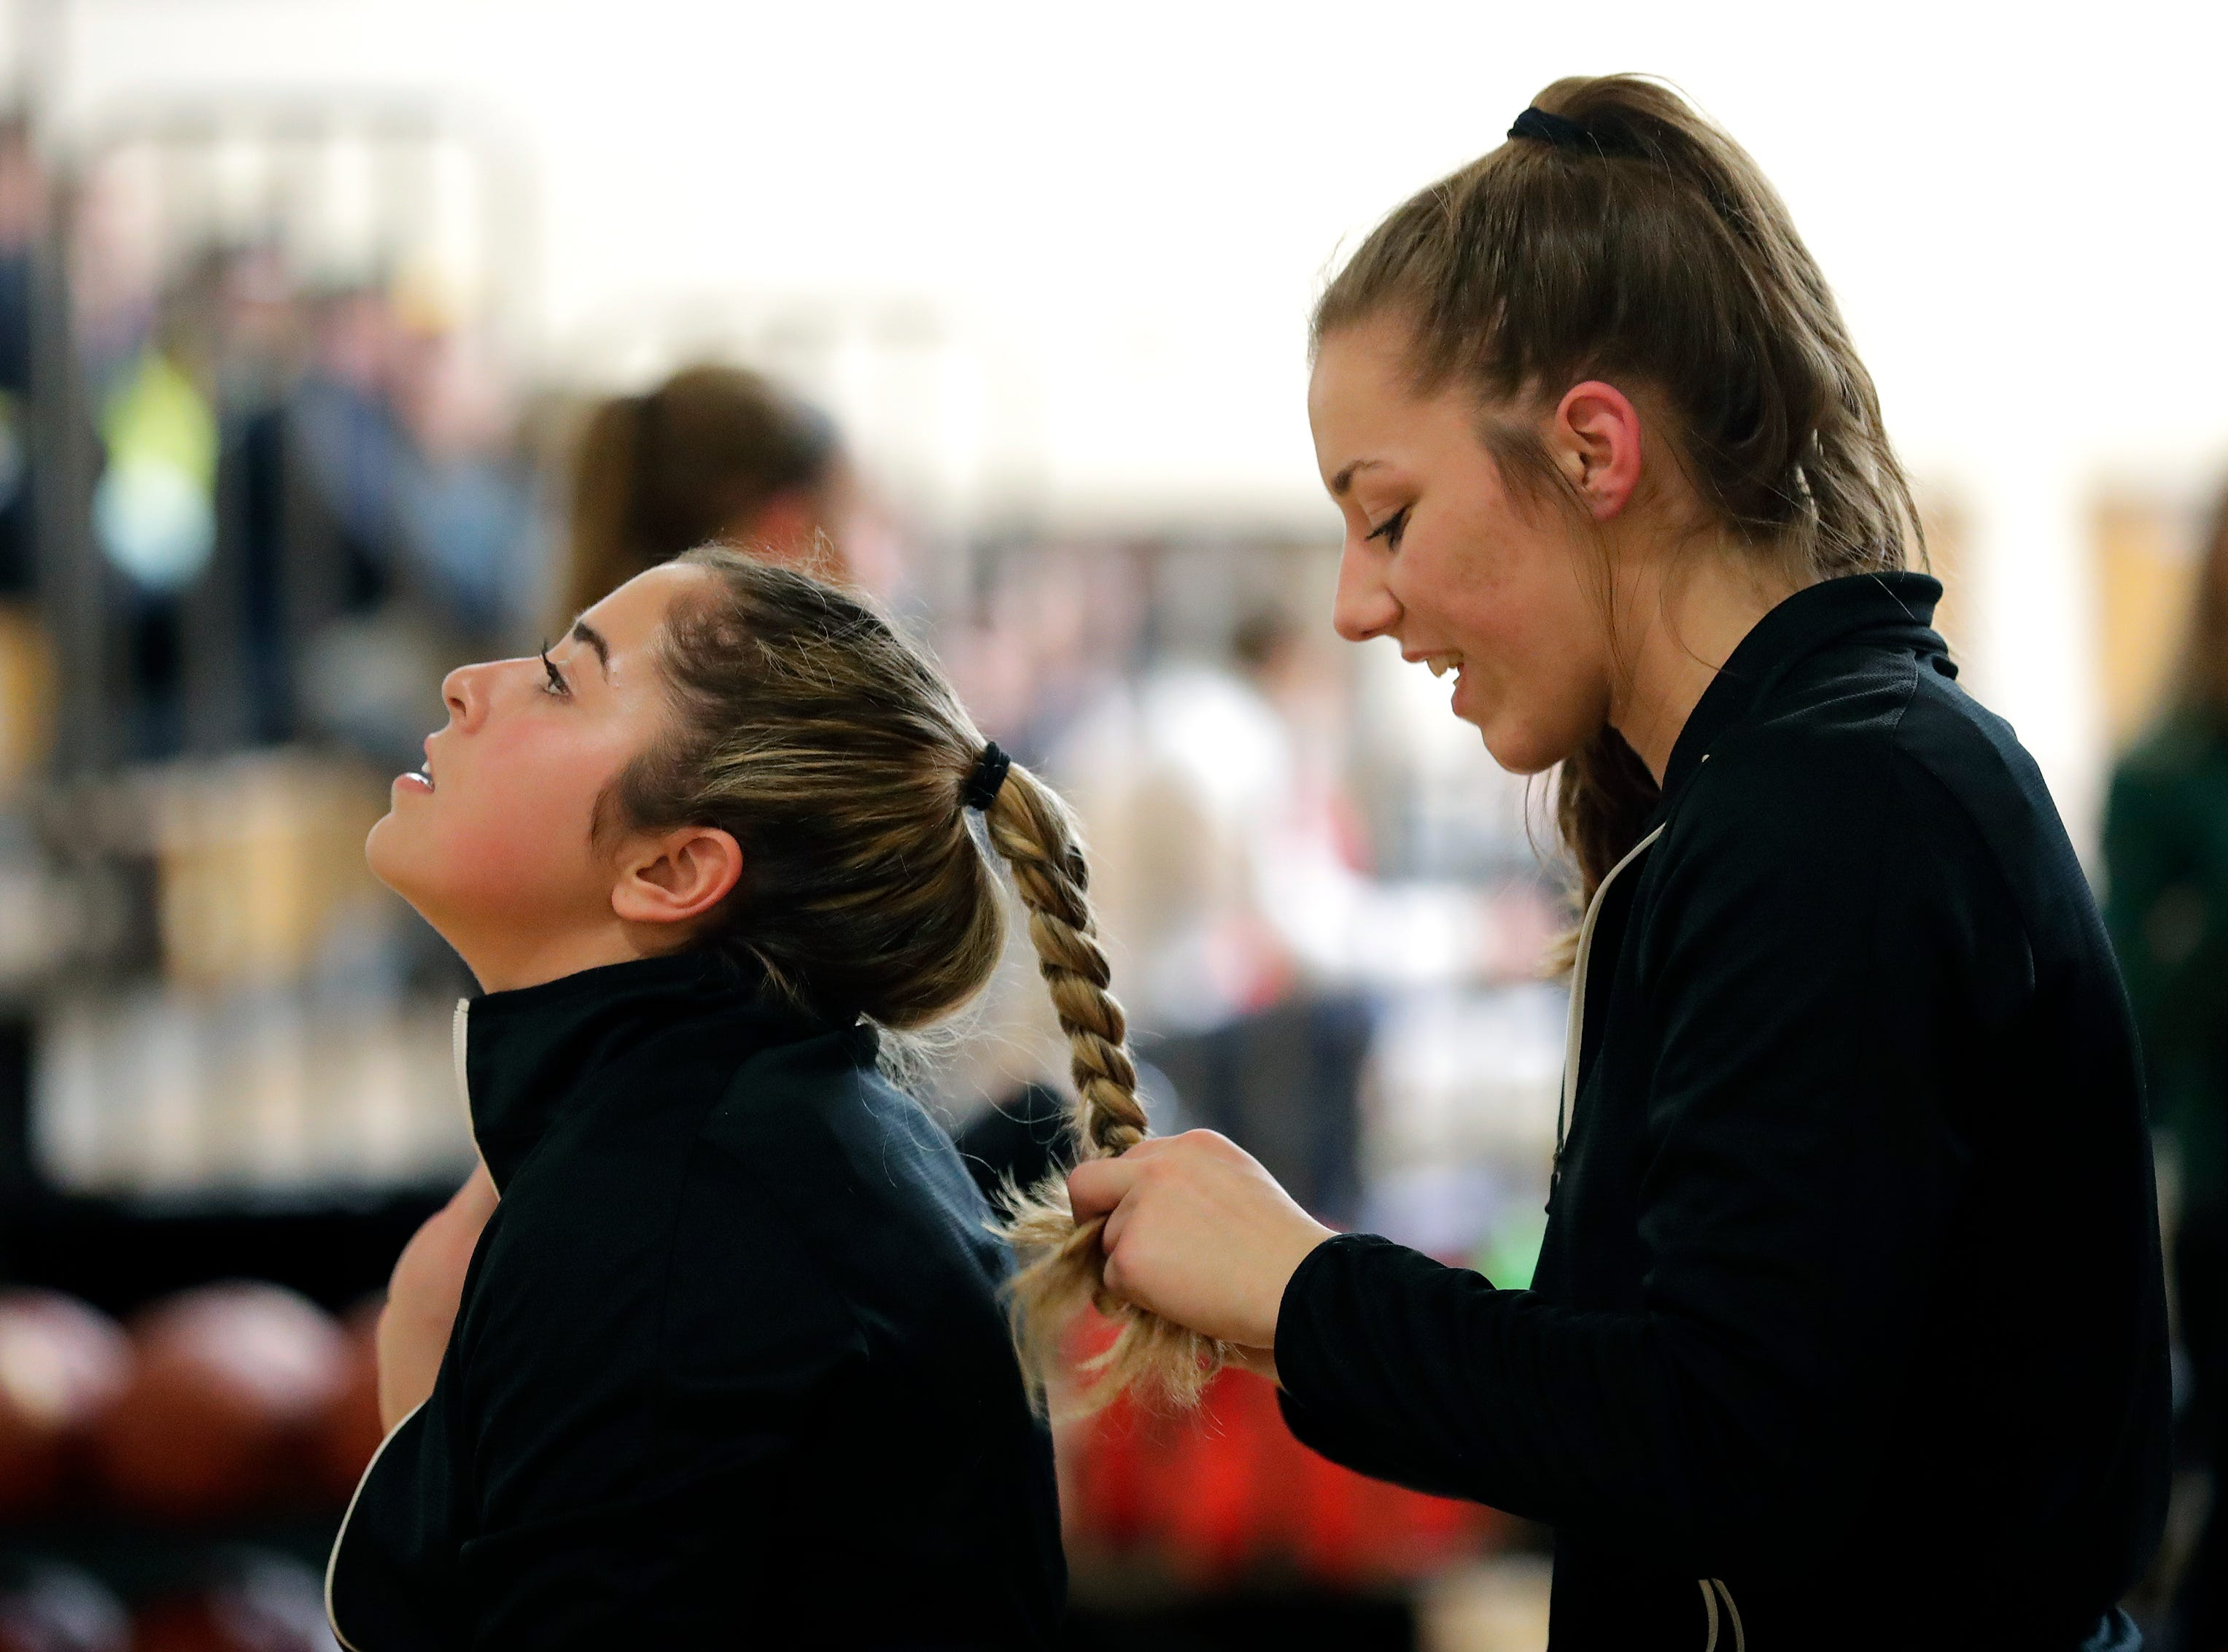 Freedom High School's Claire Burton, left, has her hair braided by Taylor Haase prior to playing against Luxemburg-Casco High School during their girls basketball game Thursday, January 24, 2019, in Freedom, Wis. 